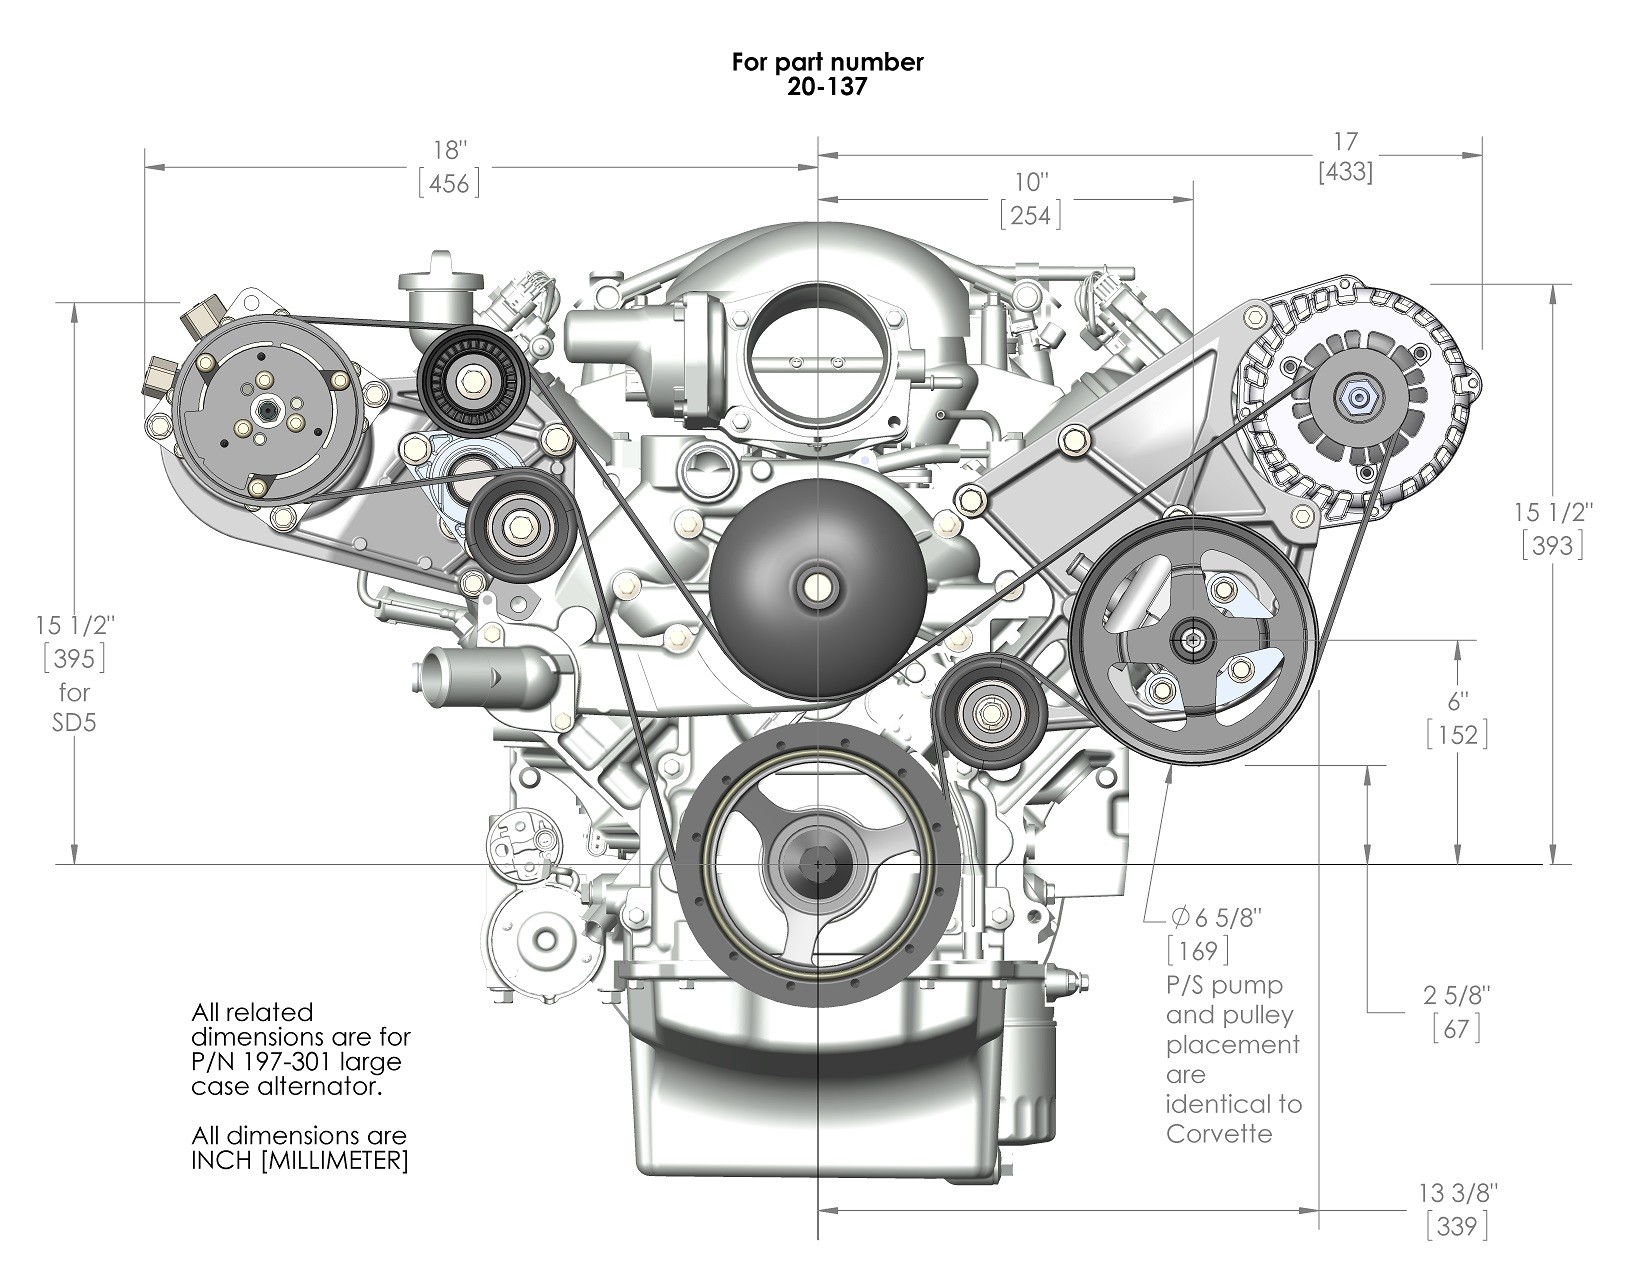 Gm 4 3 Liter Vortec Engine Diagram FULL HD Version Engine Diagram - MARG- DIAGRAM.ARROCCOTURICCHI.ITDiagram Database And Images